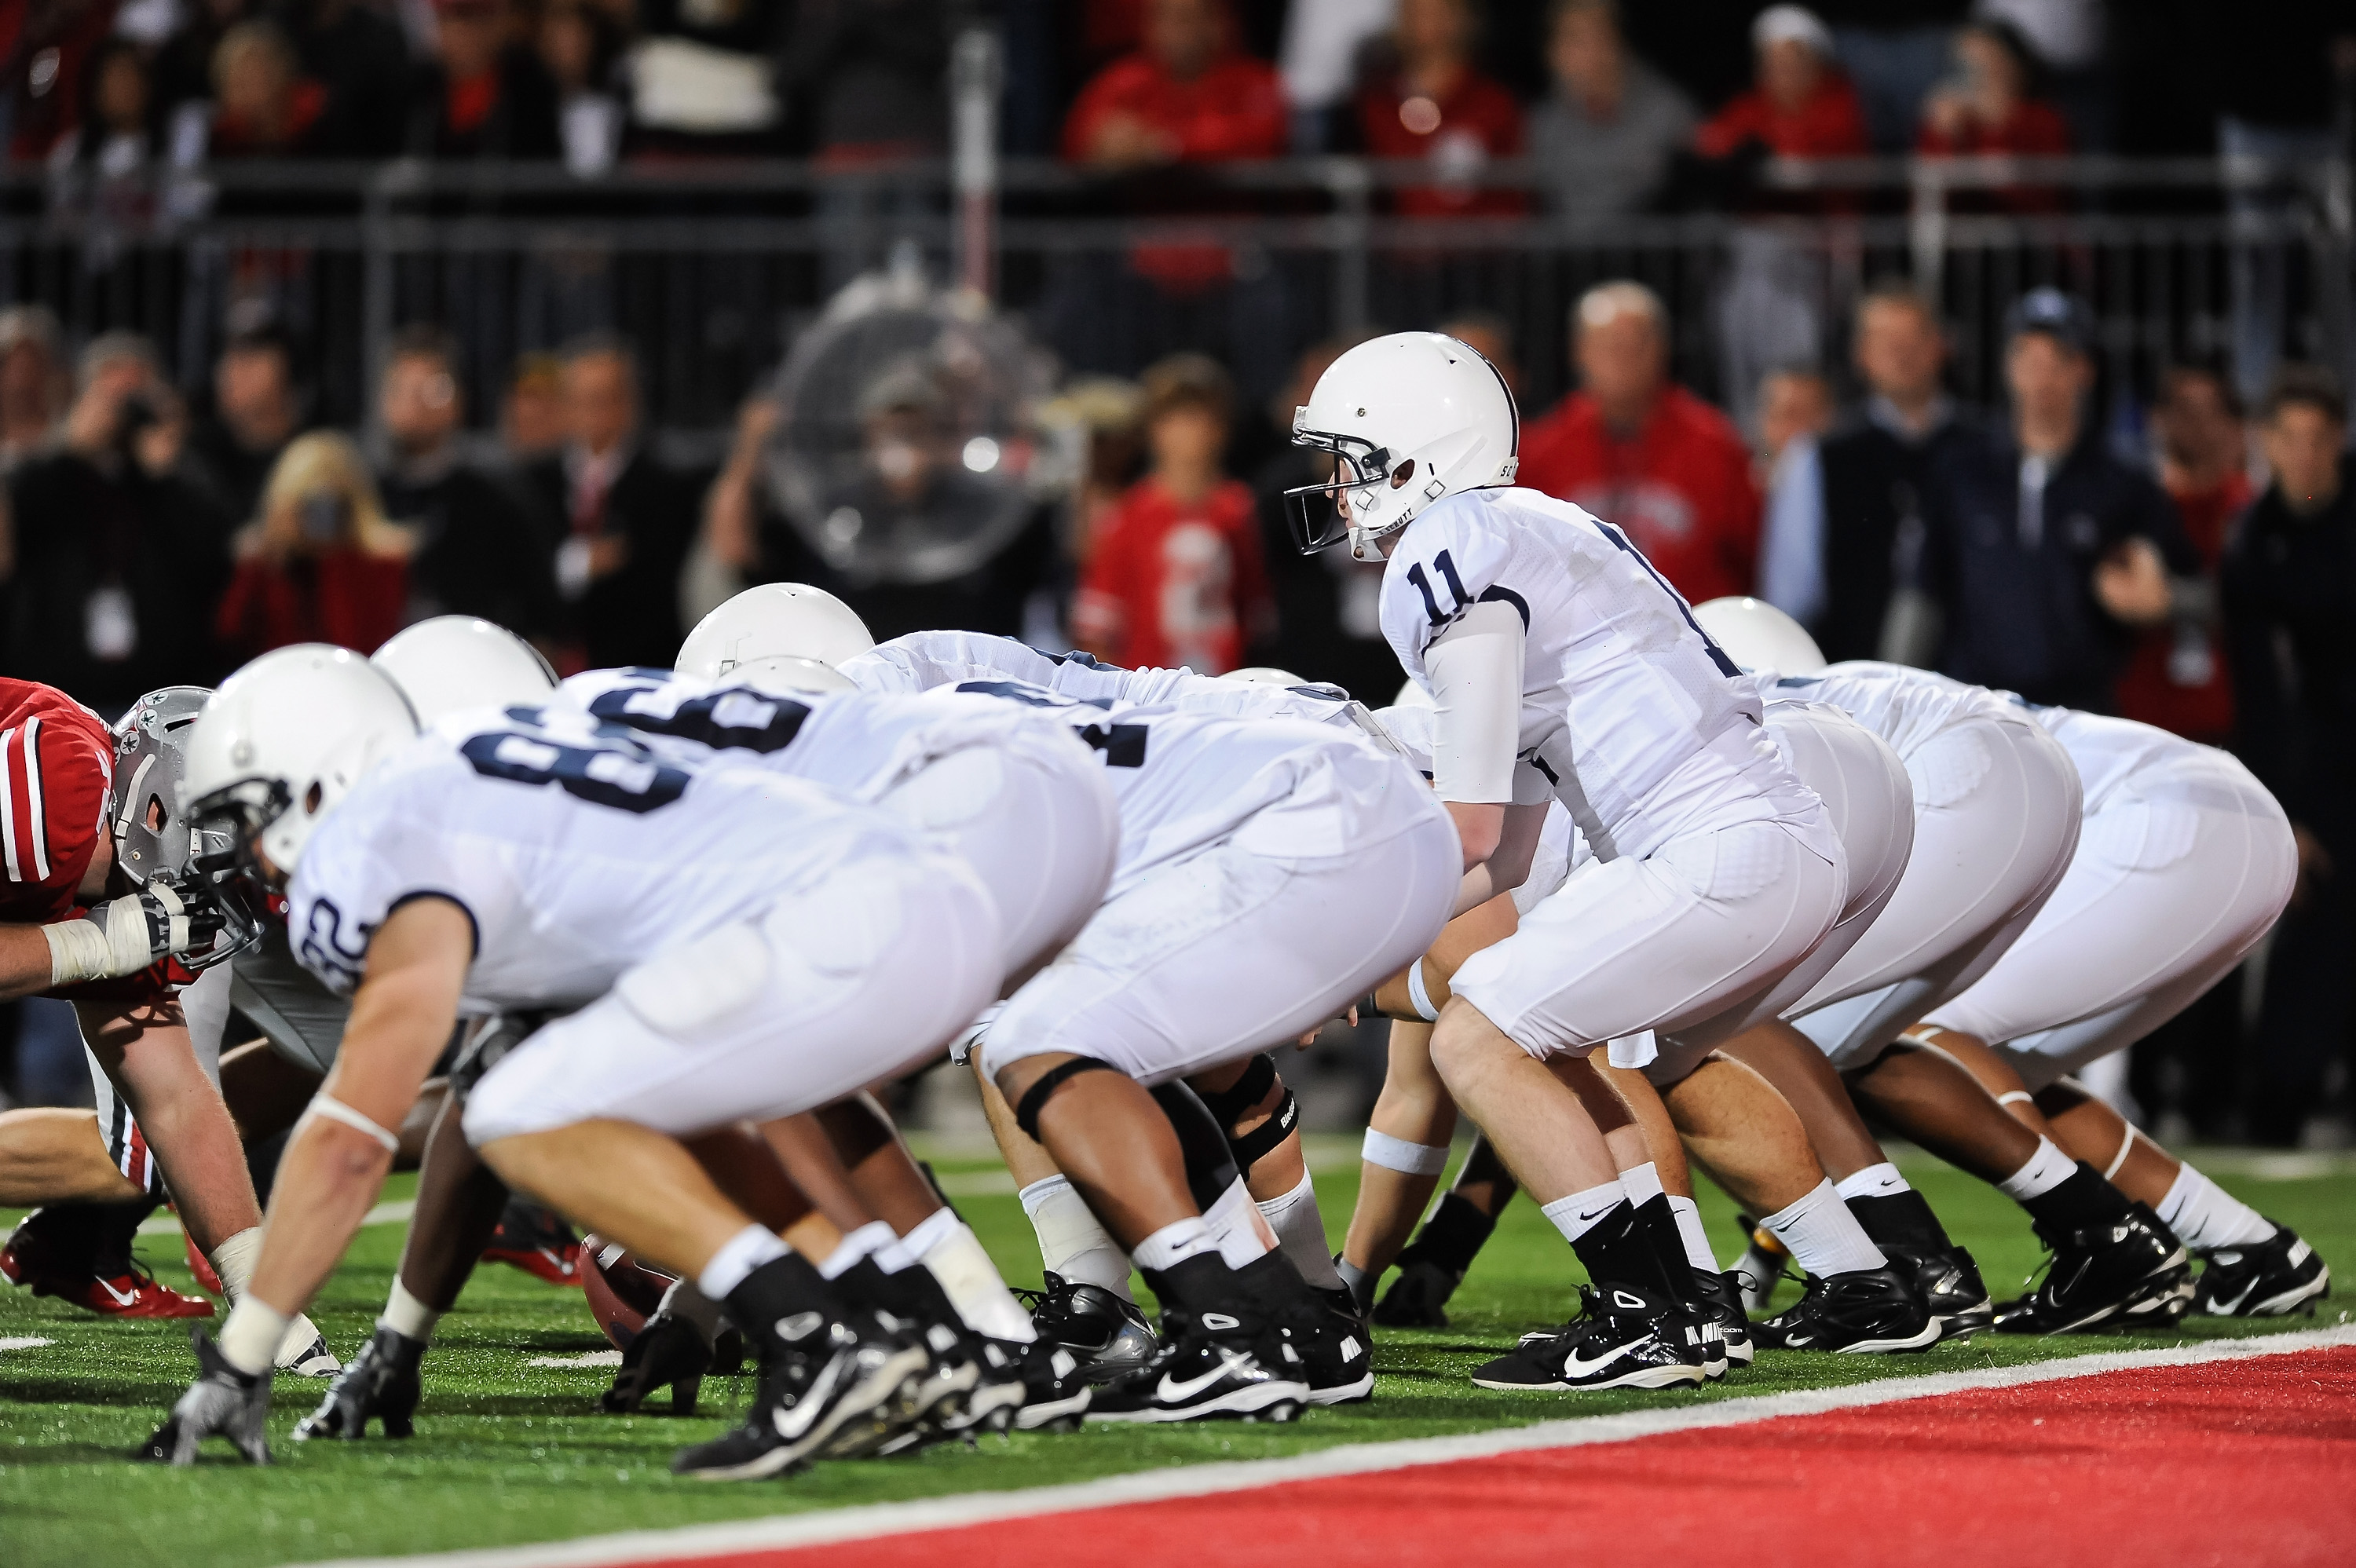 COLUMBUS, OH - NOVEMBER 13:  Quarterback Matt McGloin #11 of the Penn State Nittany Lions takes the snap against the Ohio State Buckeyes at Ohio Stadium on November 13, 2010 in Columbus, Ohio.  (Photo by Jamie Sabau/Getty Images)